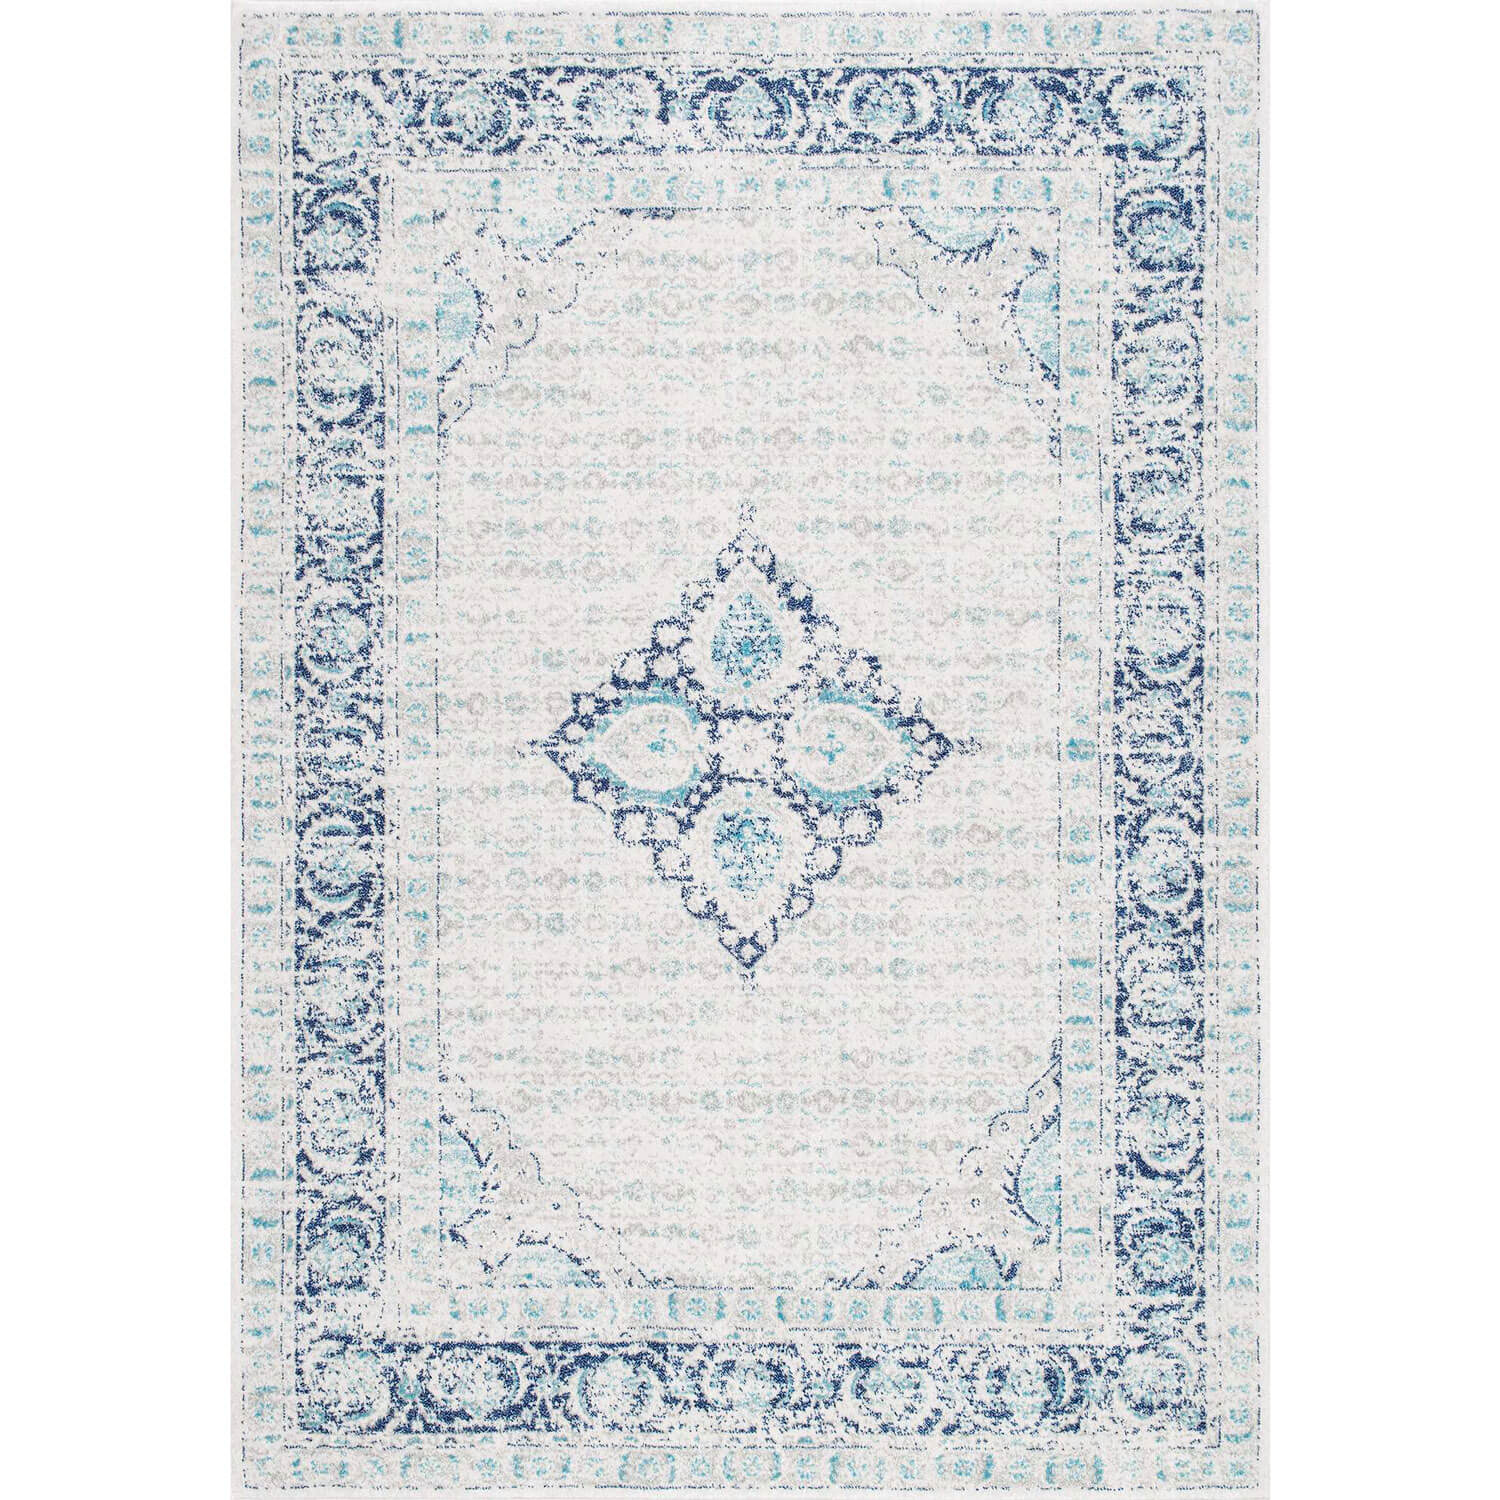 Vintage Throw Rugs: Poppy Vintage Inspired Area Rug– Dormify